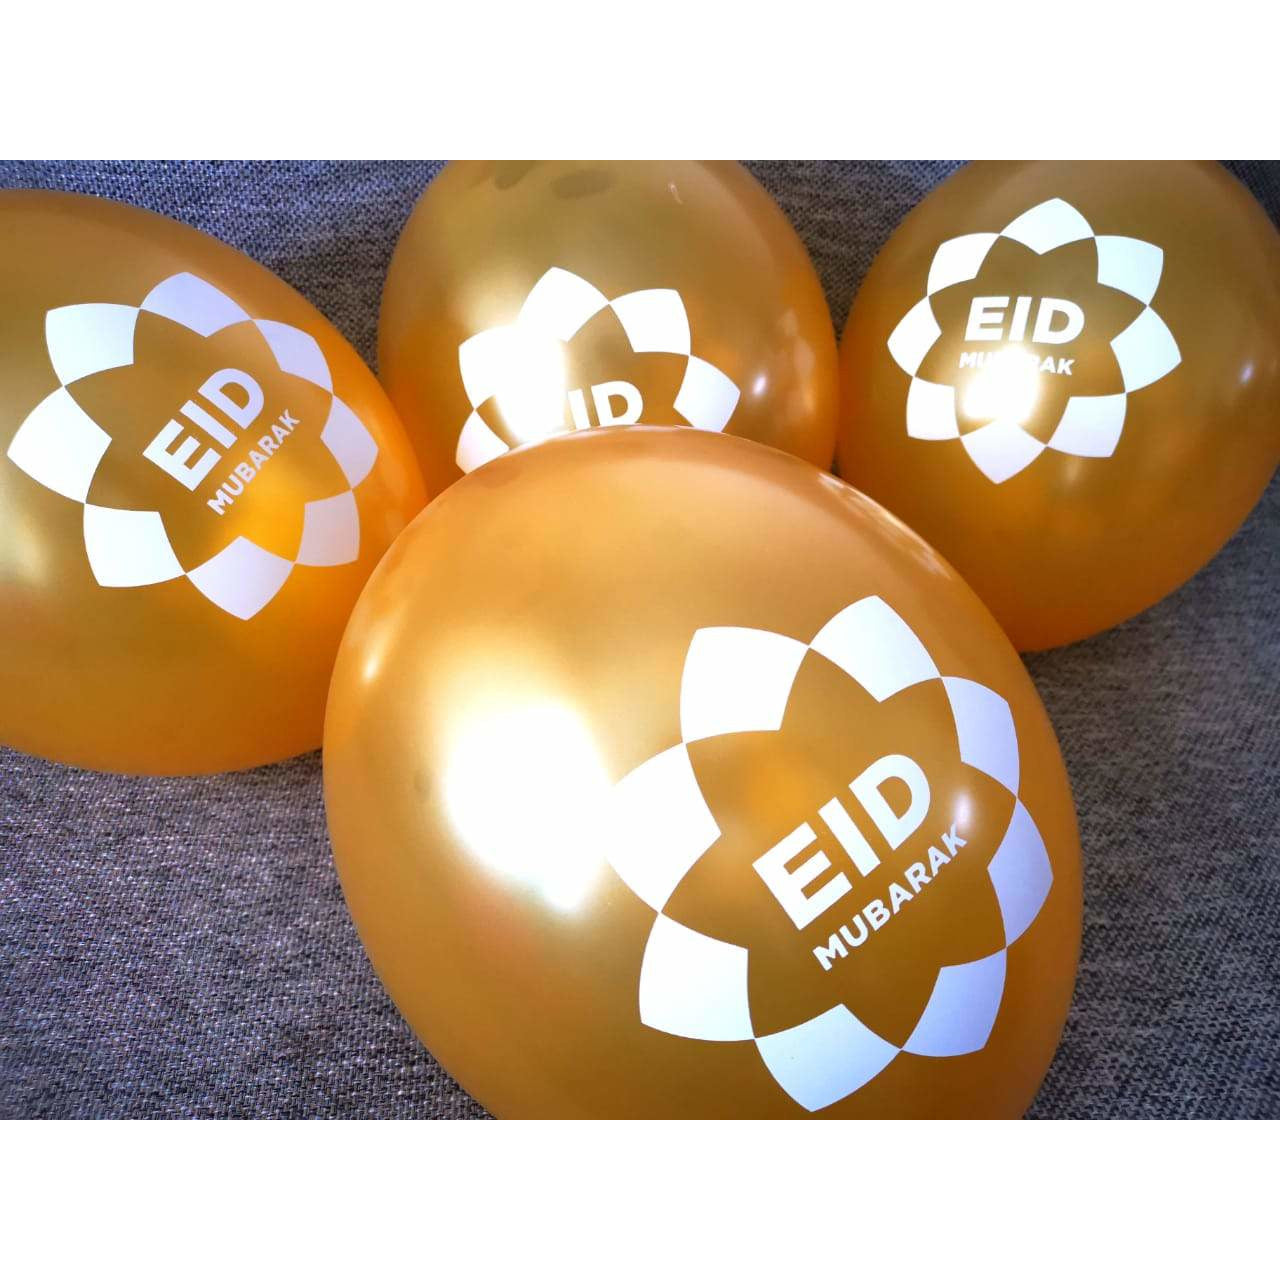 Gold Eid Mubarak Balloons (Pack of 10)